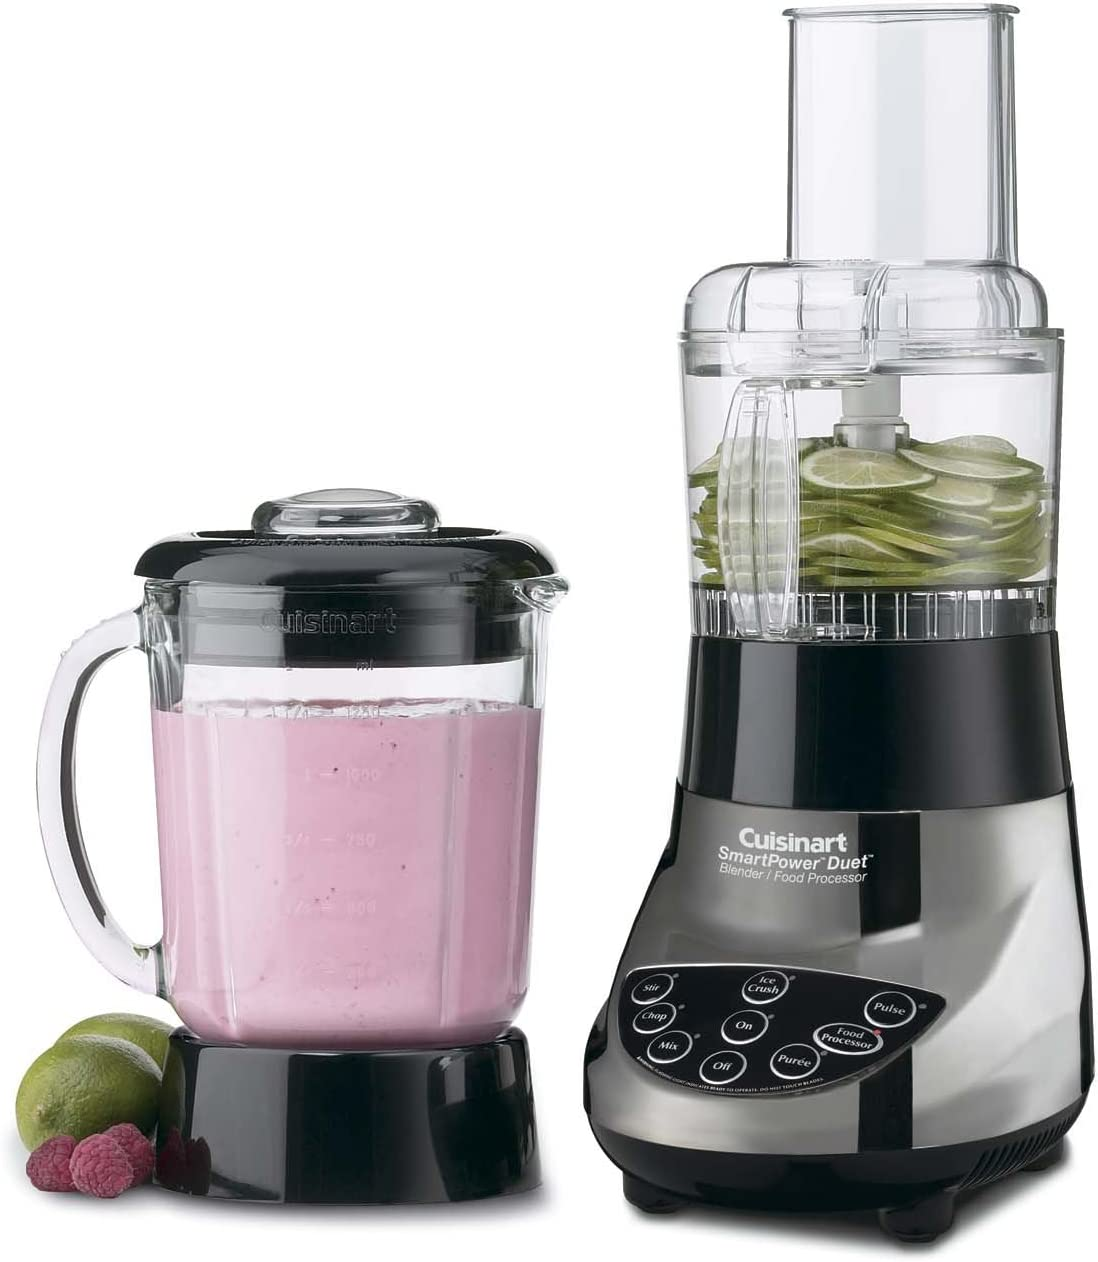 Best blender with glass jar - Cuisinart BFP-703BC Blender